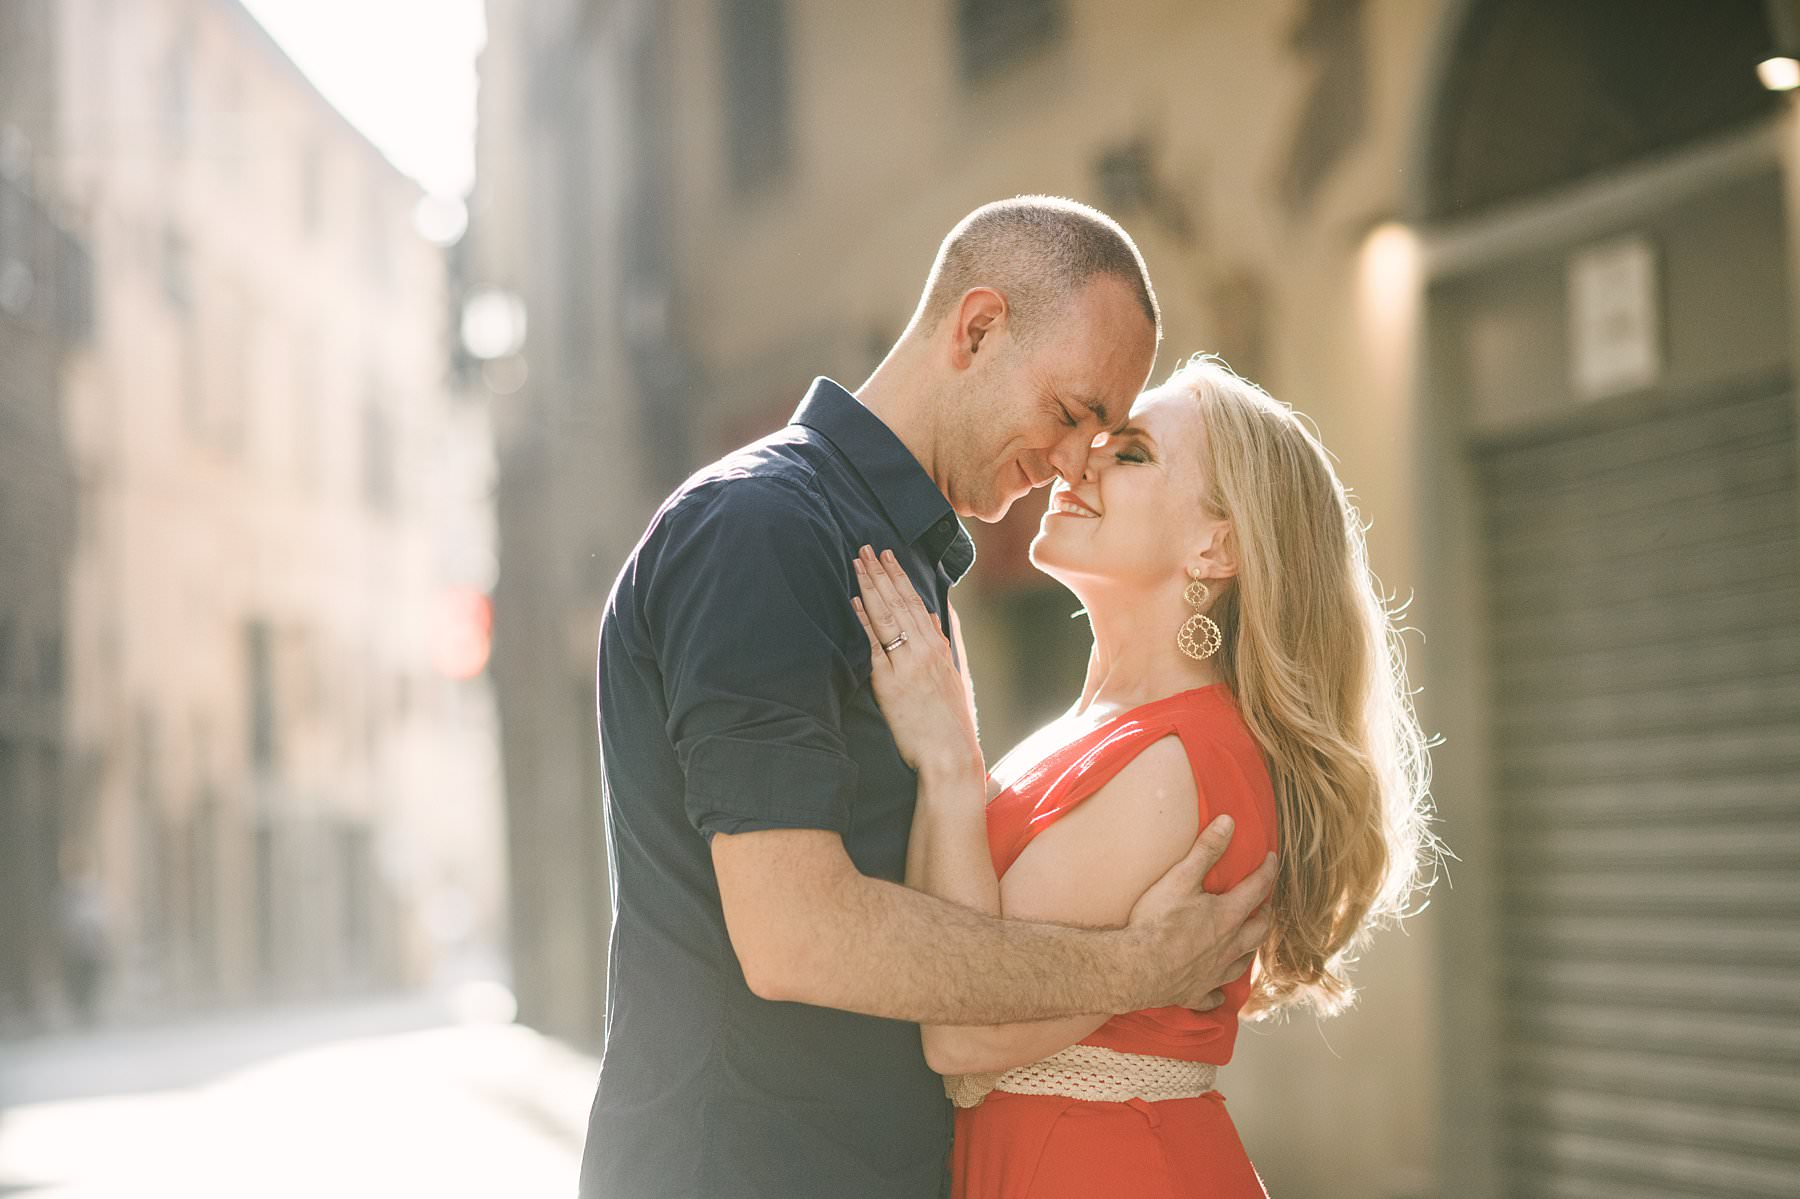 Anniversary photos in Florence: soft as sunrise, red as passion. Lovely couple portrait in the streets of Florence near Palazzo Vecchio and Piazza della Signoria under a gorgeous delicate and warm light